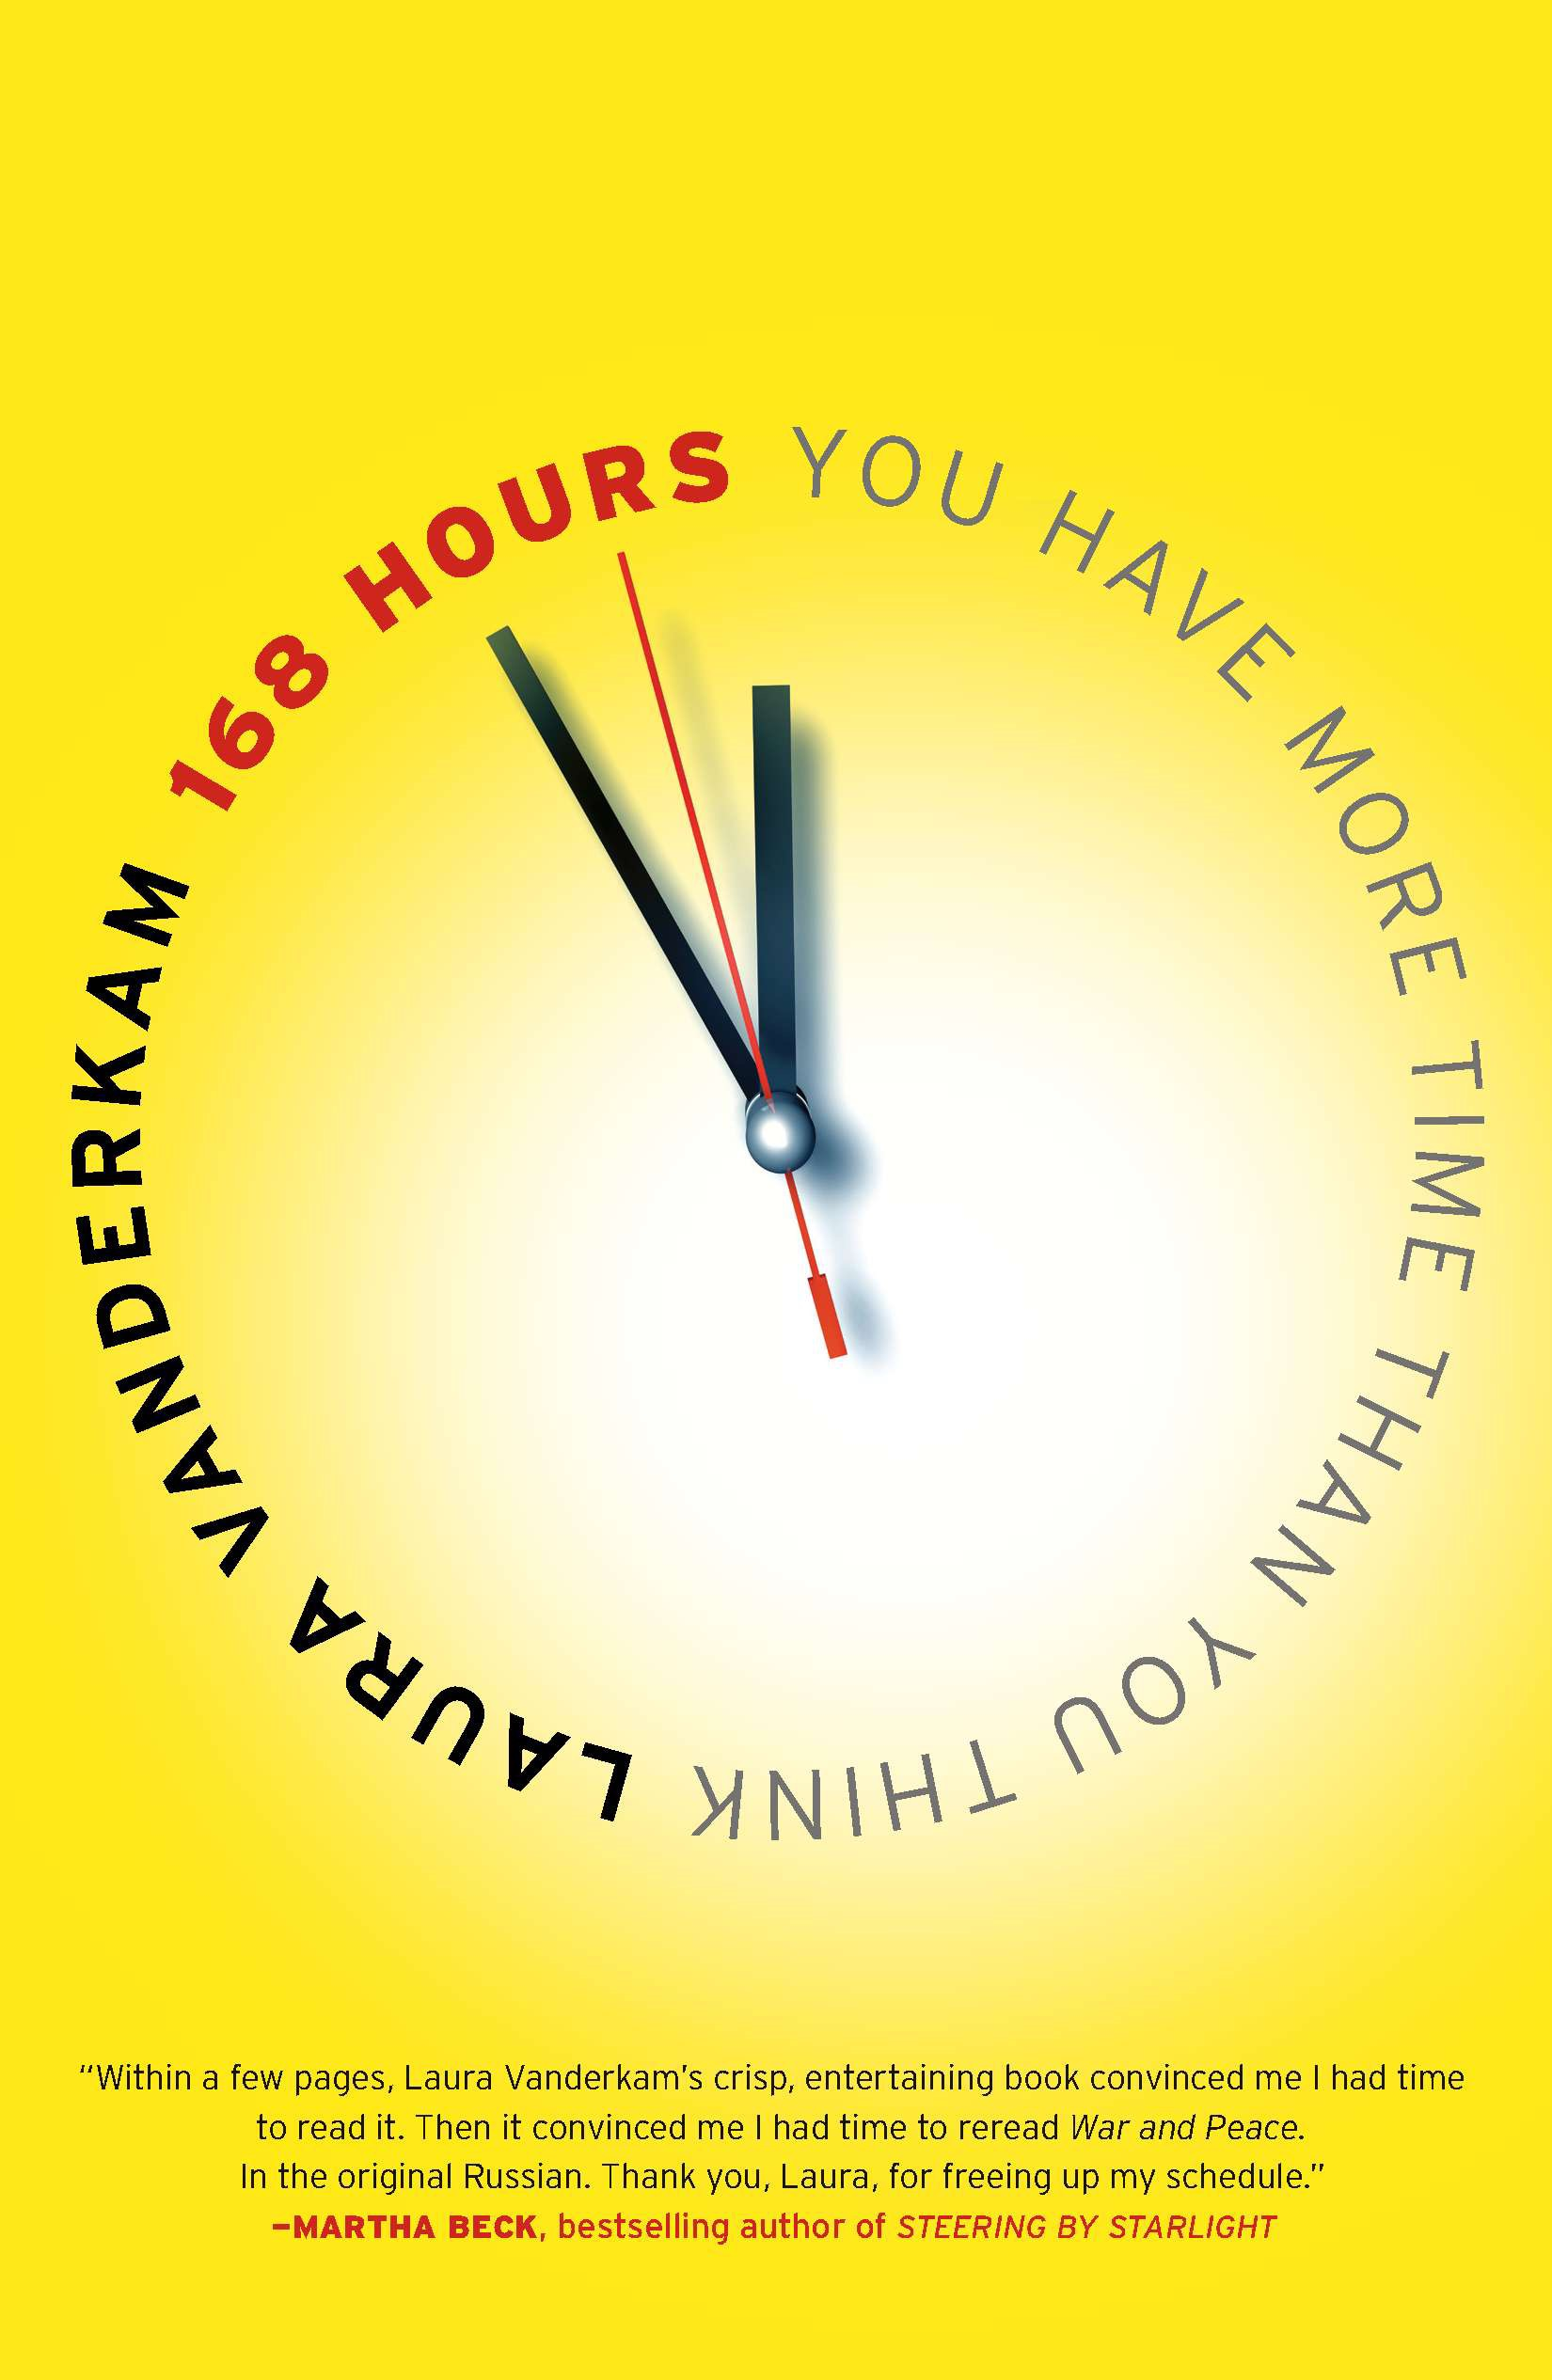 Download Ebook 168 Hours by Laura Vanderkam Pdf